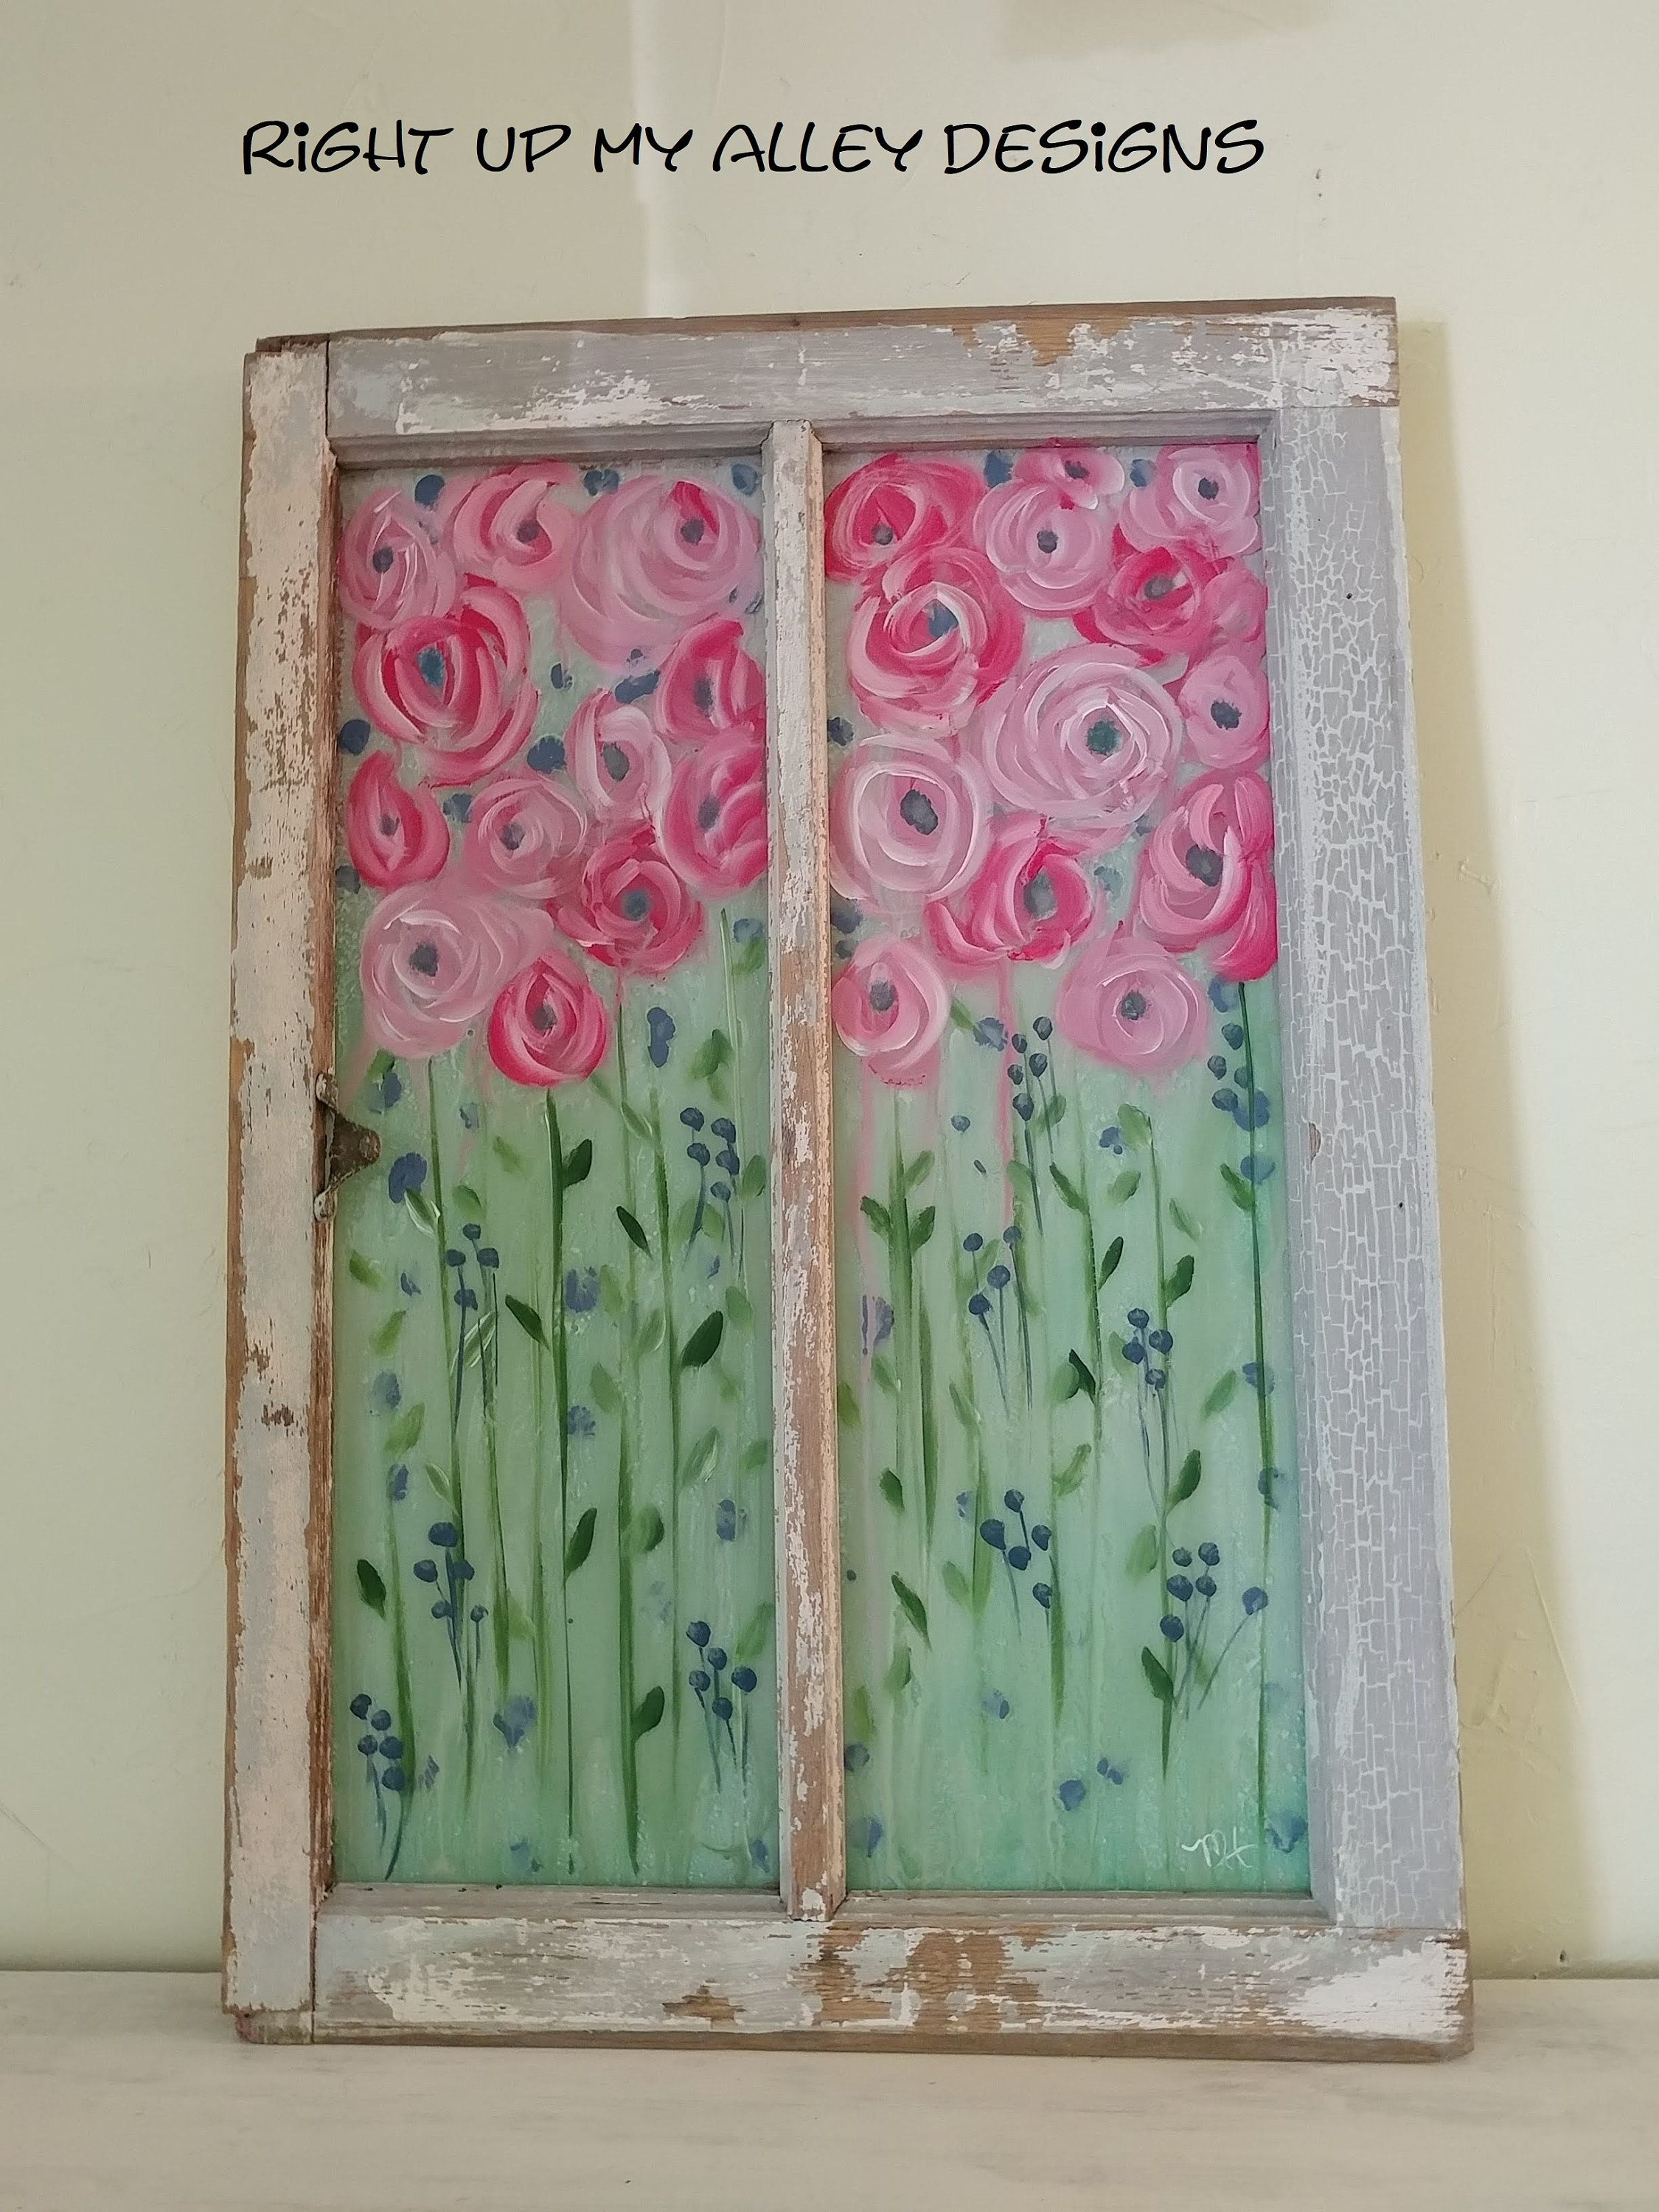 Soldpainted Windowsshabby Chic Wall Decorwindow Wall Etsy In